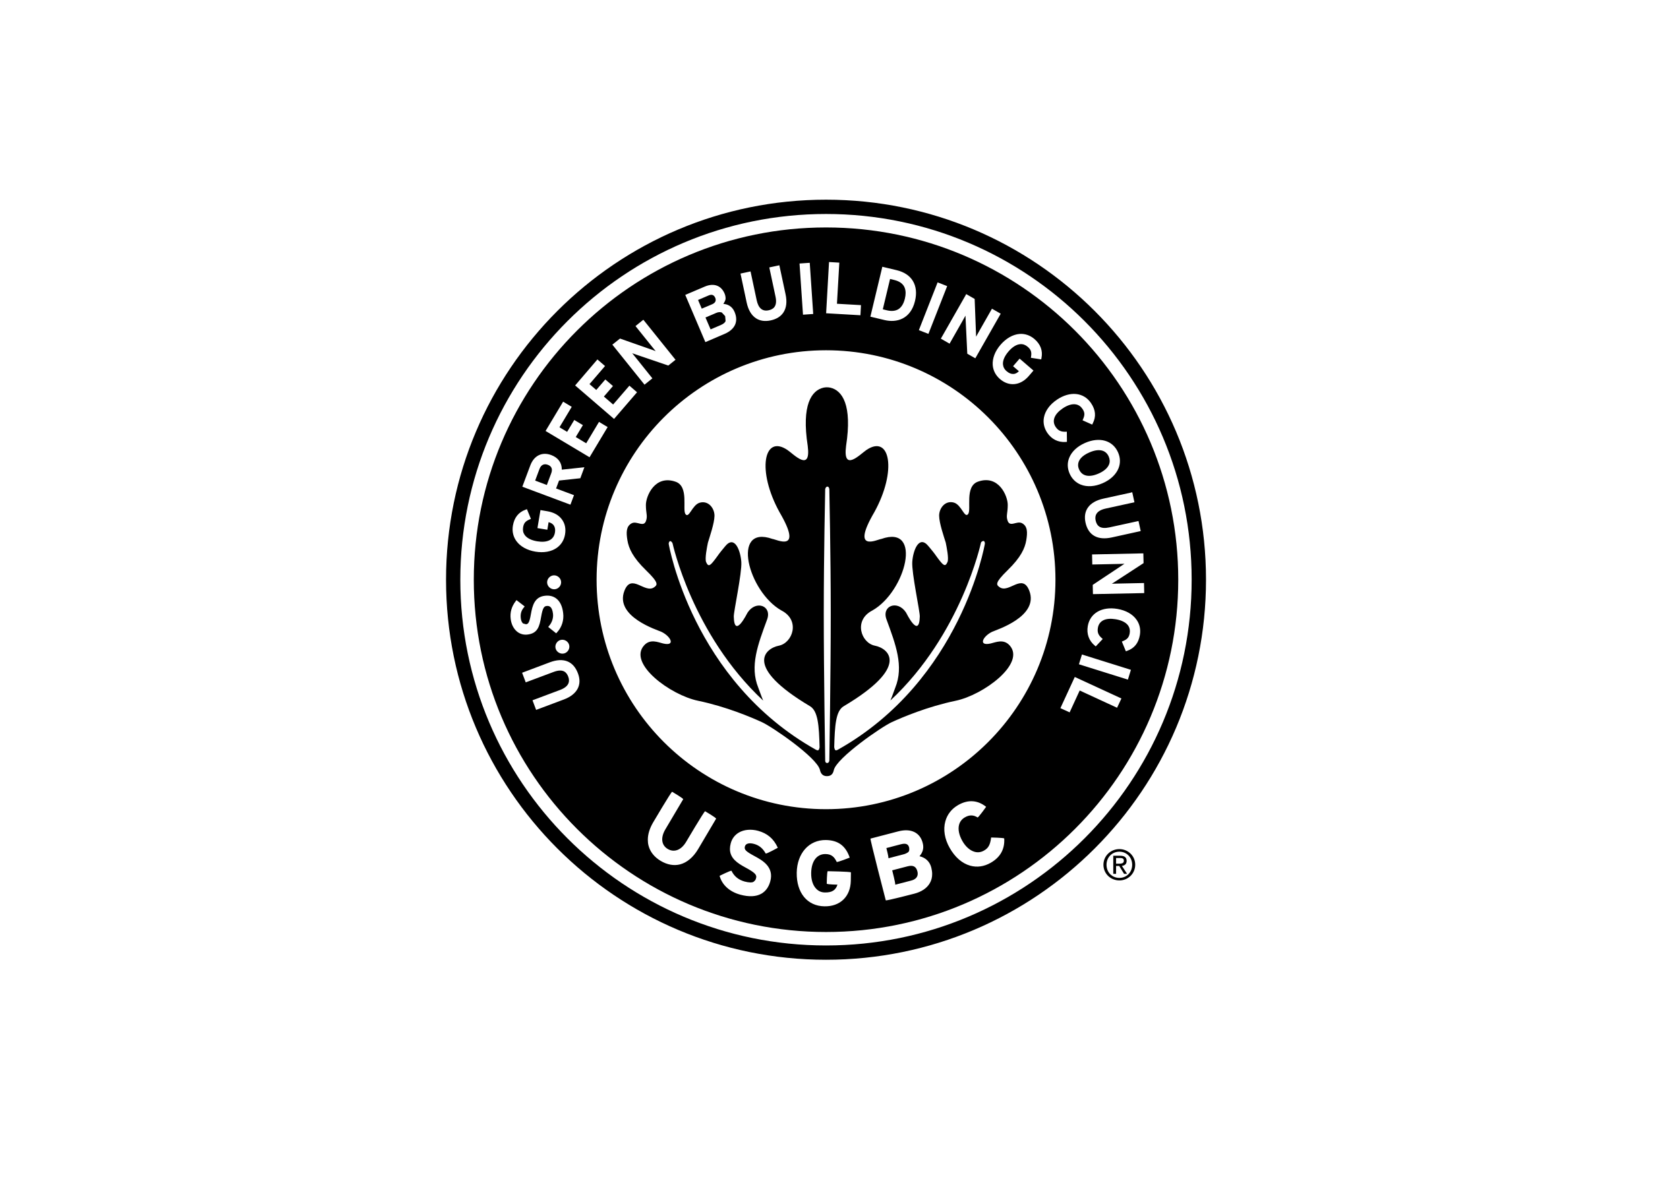 USGBC_U.S._Green_Building_Council_logo_V2_LEED